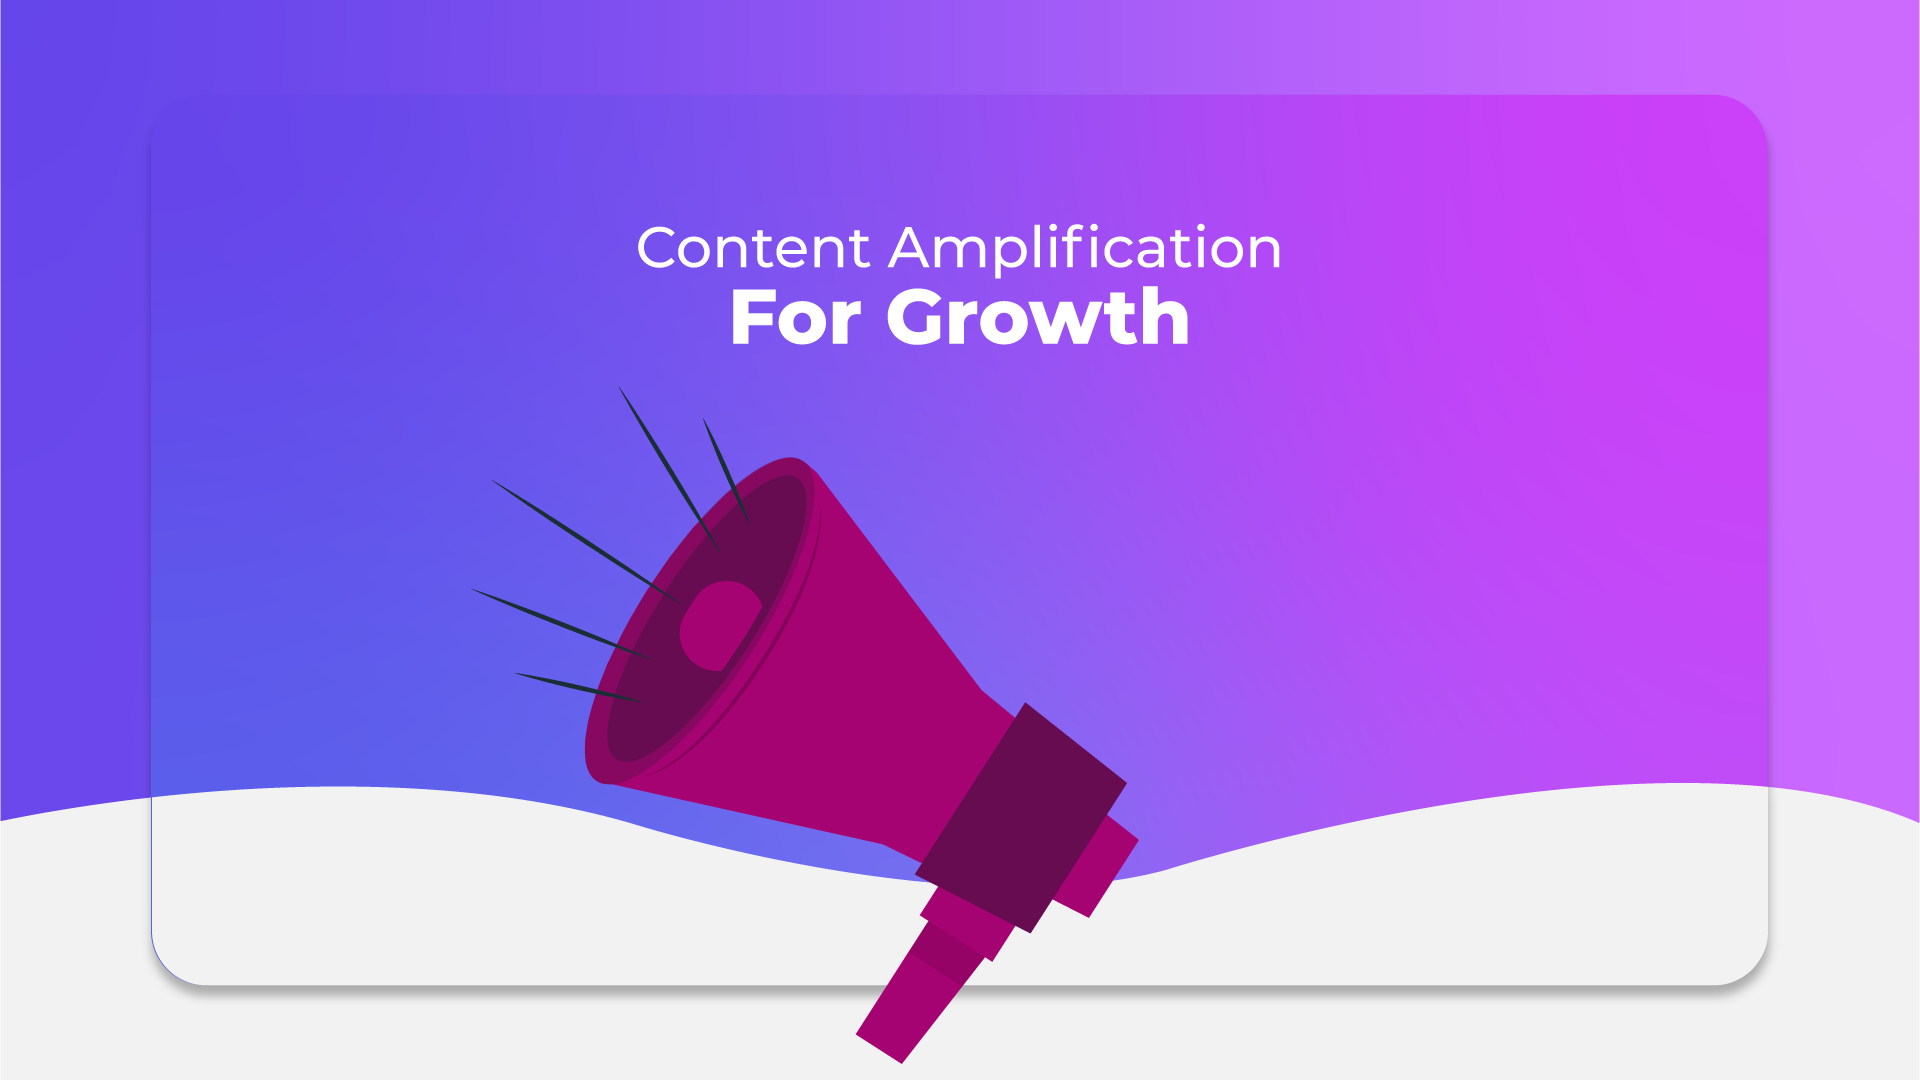 Content Amplification for Growth